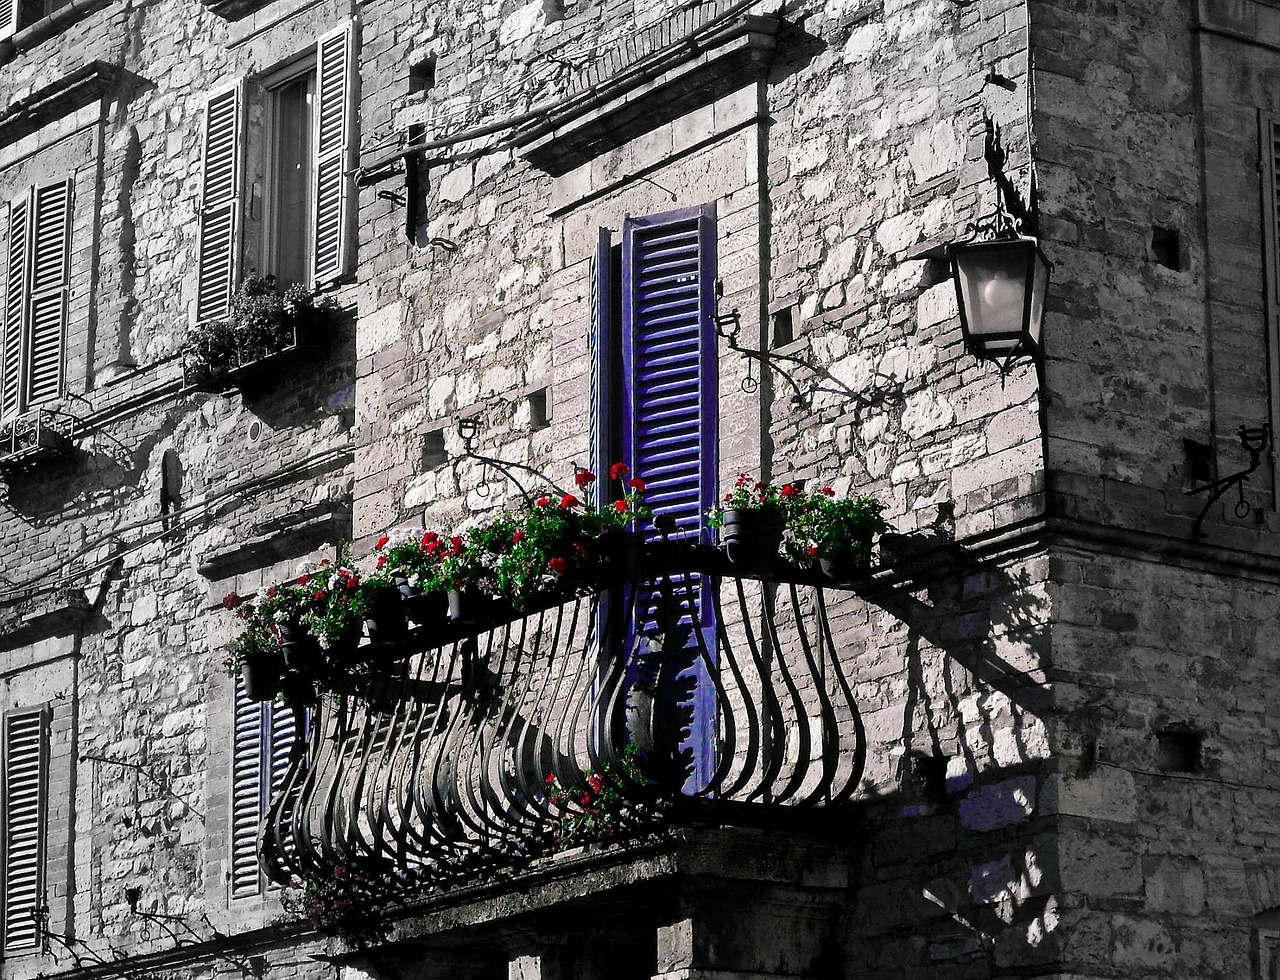 Assisi_Balcony with Flowers_1280.jpg